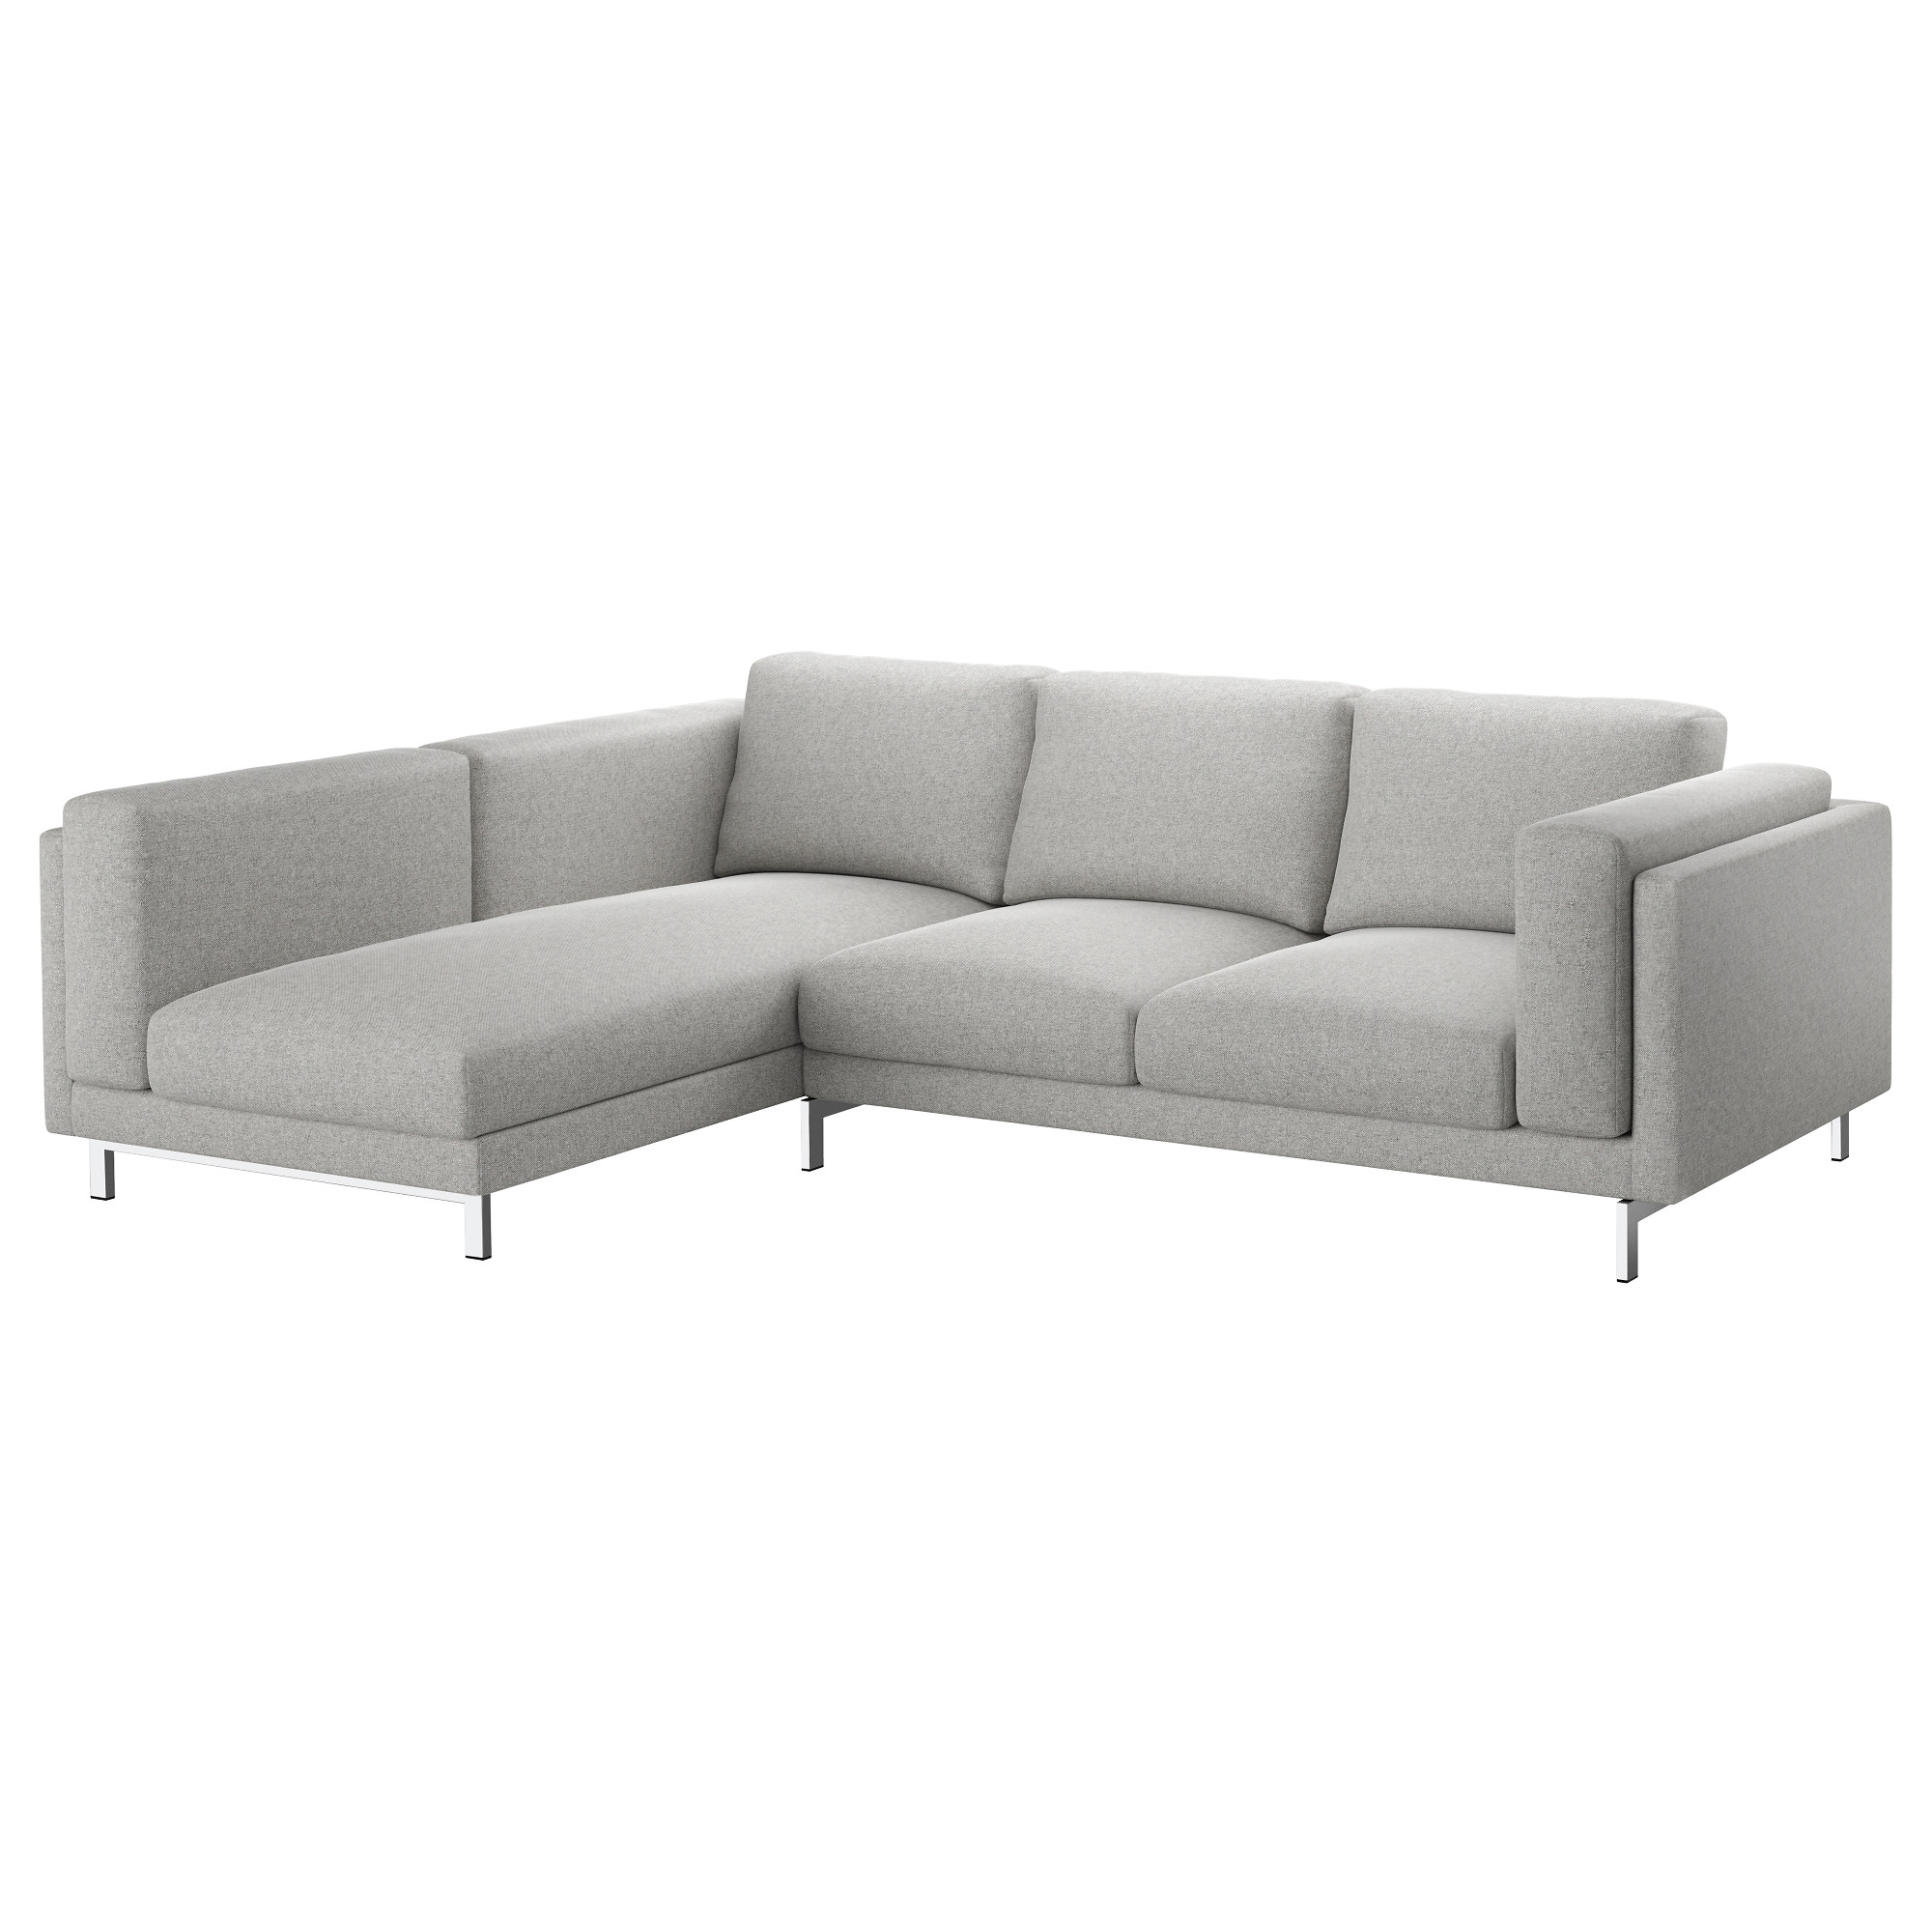 Bon NOCKEBY Sofa   With Chaise, Chrome Plated   IKEA